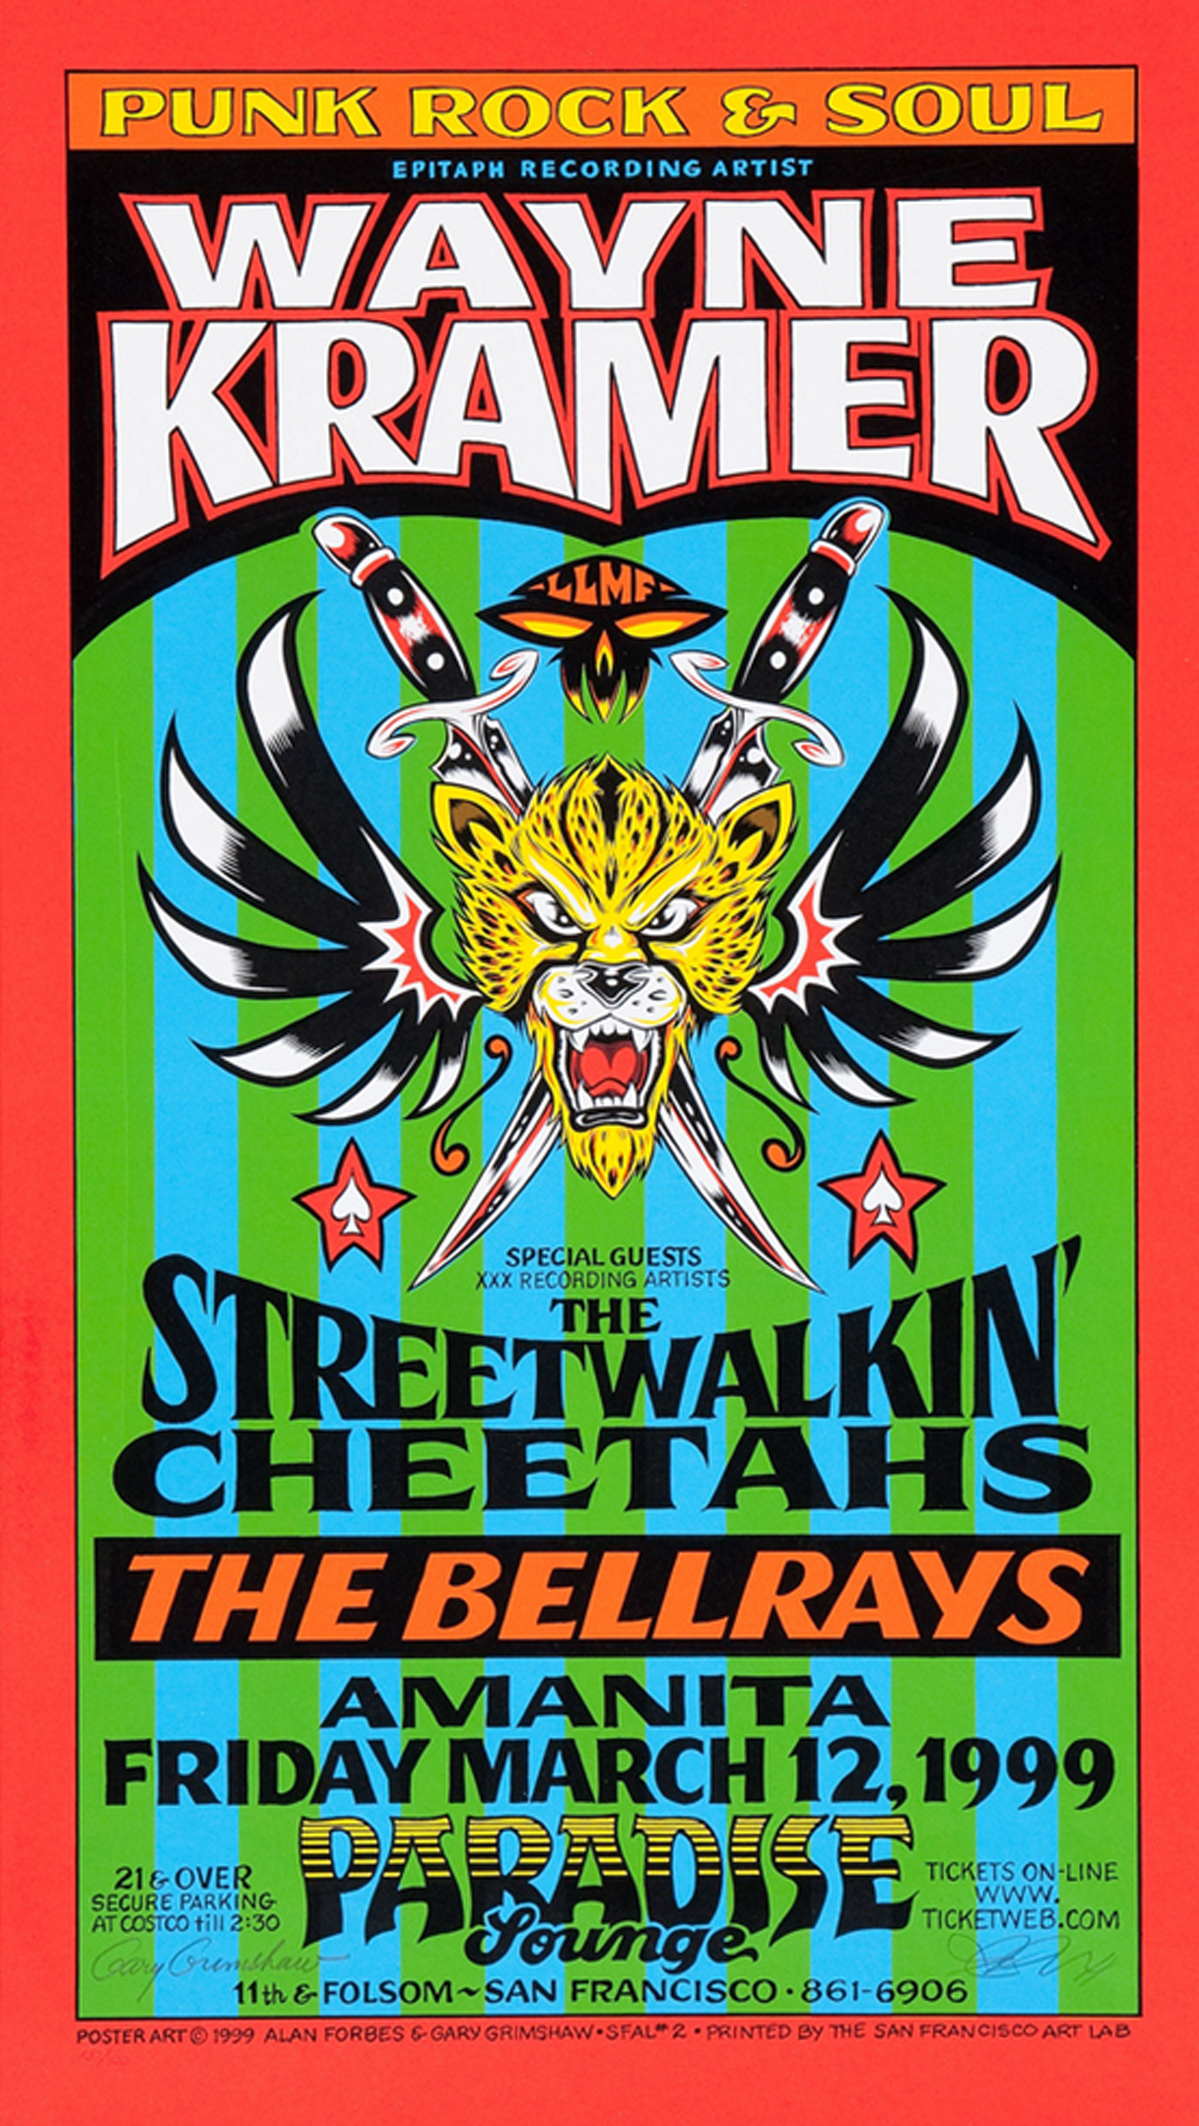 Wayne Kramer and the Streetwalkin' Cheetahs 1999